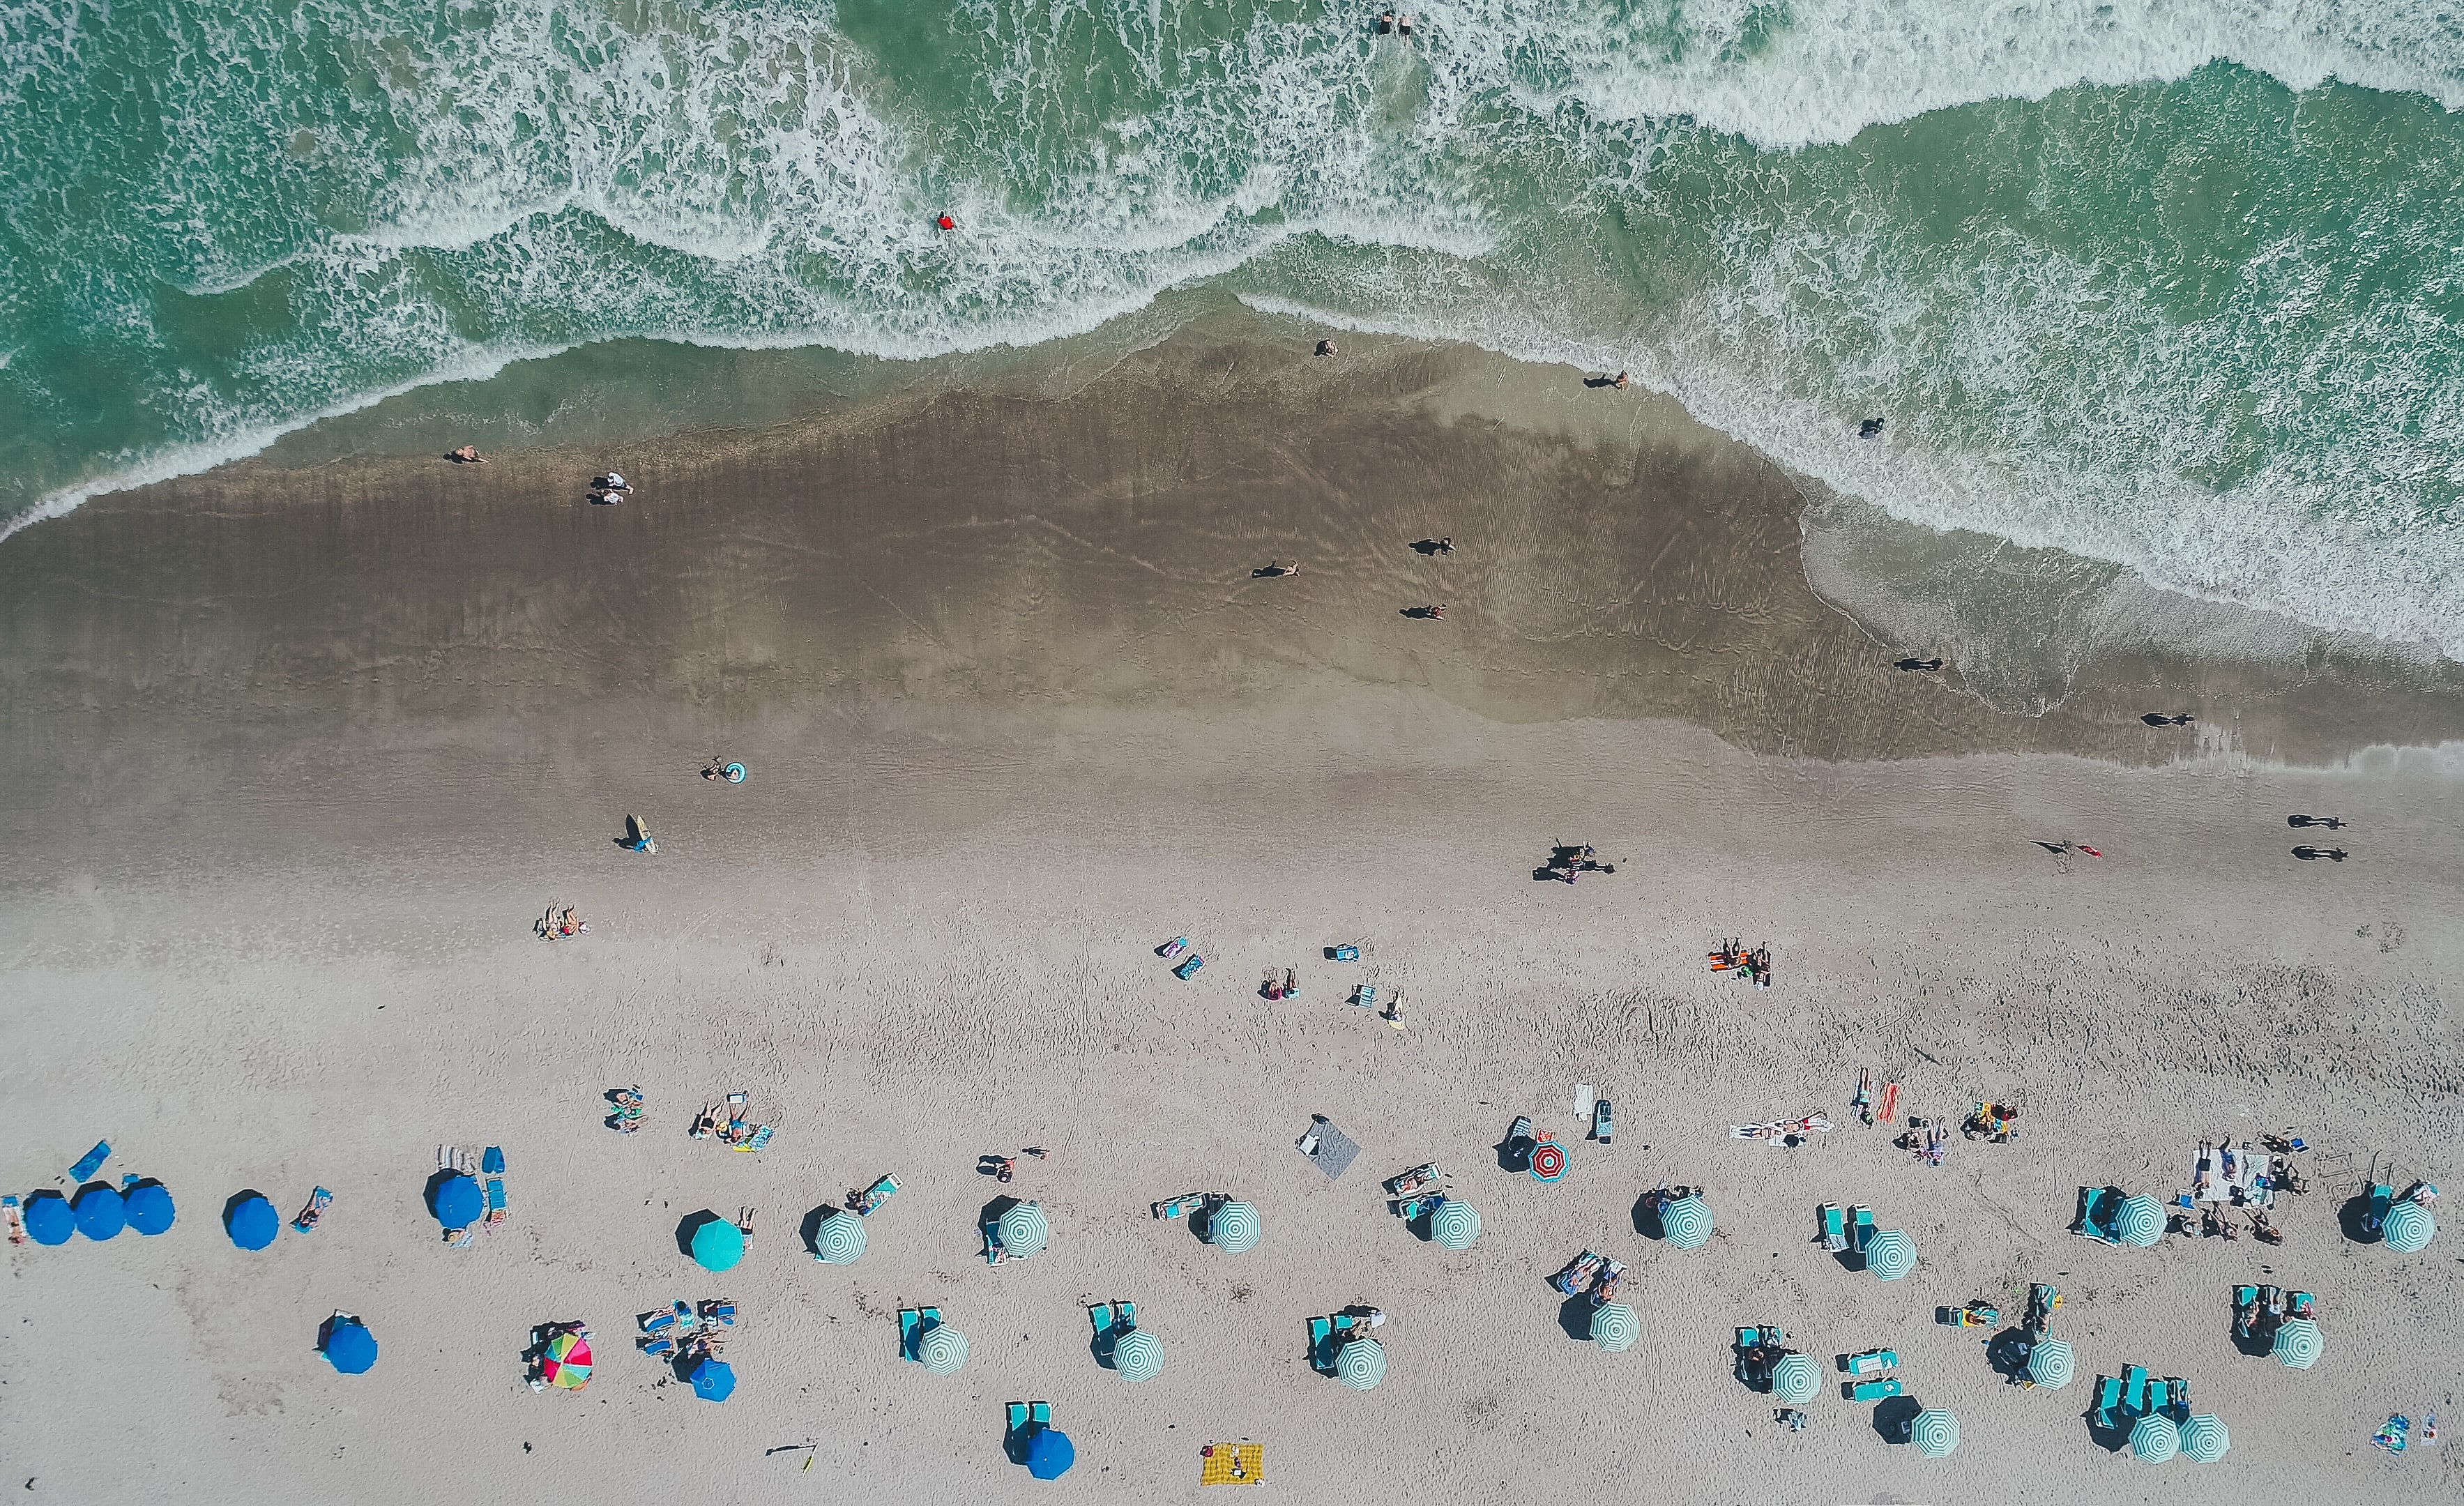 bird's eye view of people on shoreline near body of water